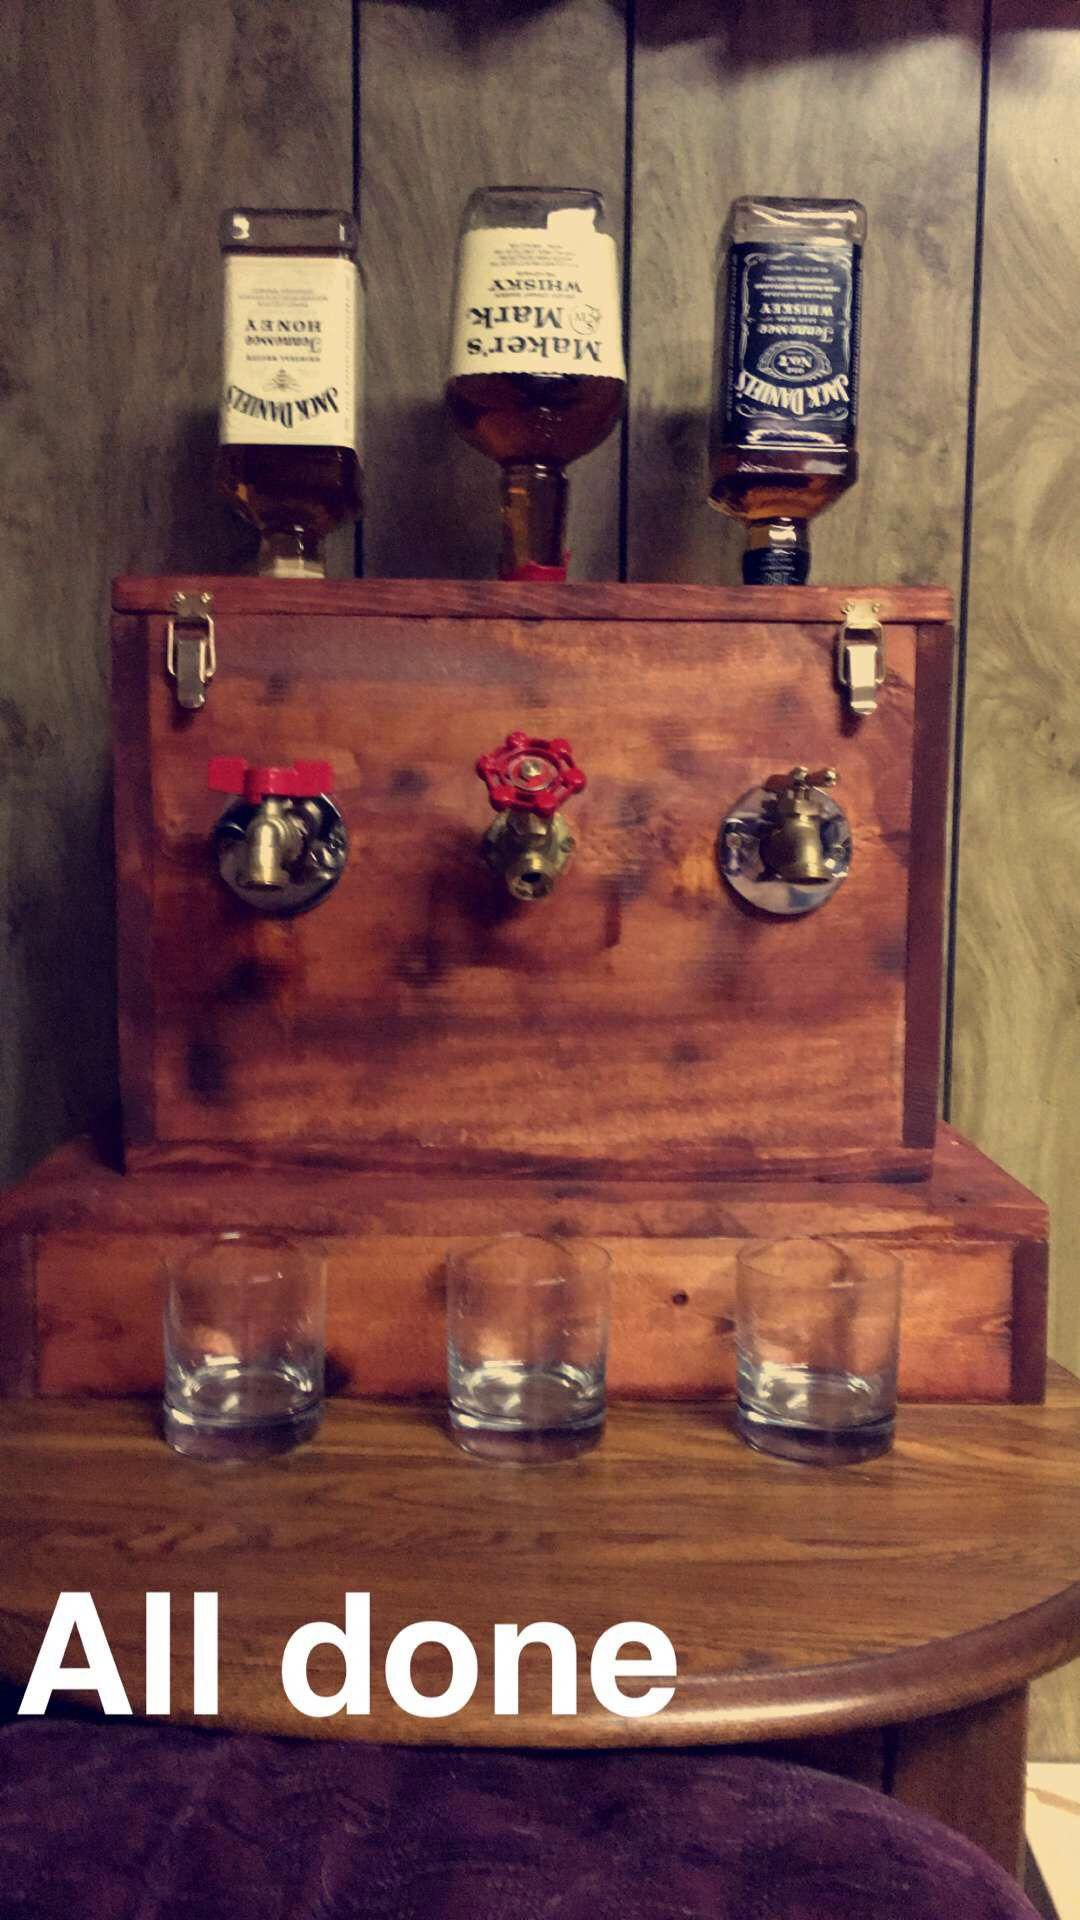 Find Out More On Fabulous Mancave Remodel Ideas Do It Yourself Mancavejewellery Man Man Cave Home Bar Beginner Woodworking Projects Easy Woodworking Projects